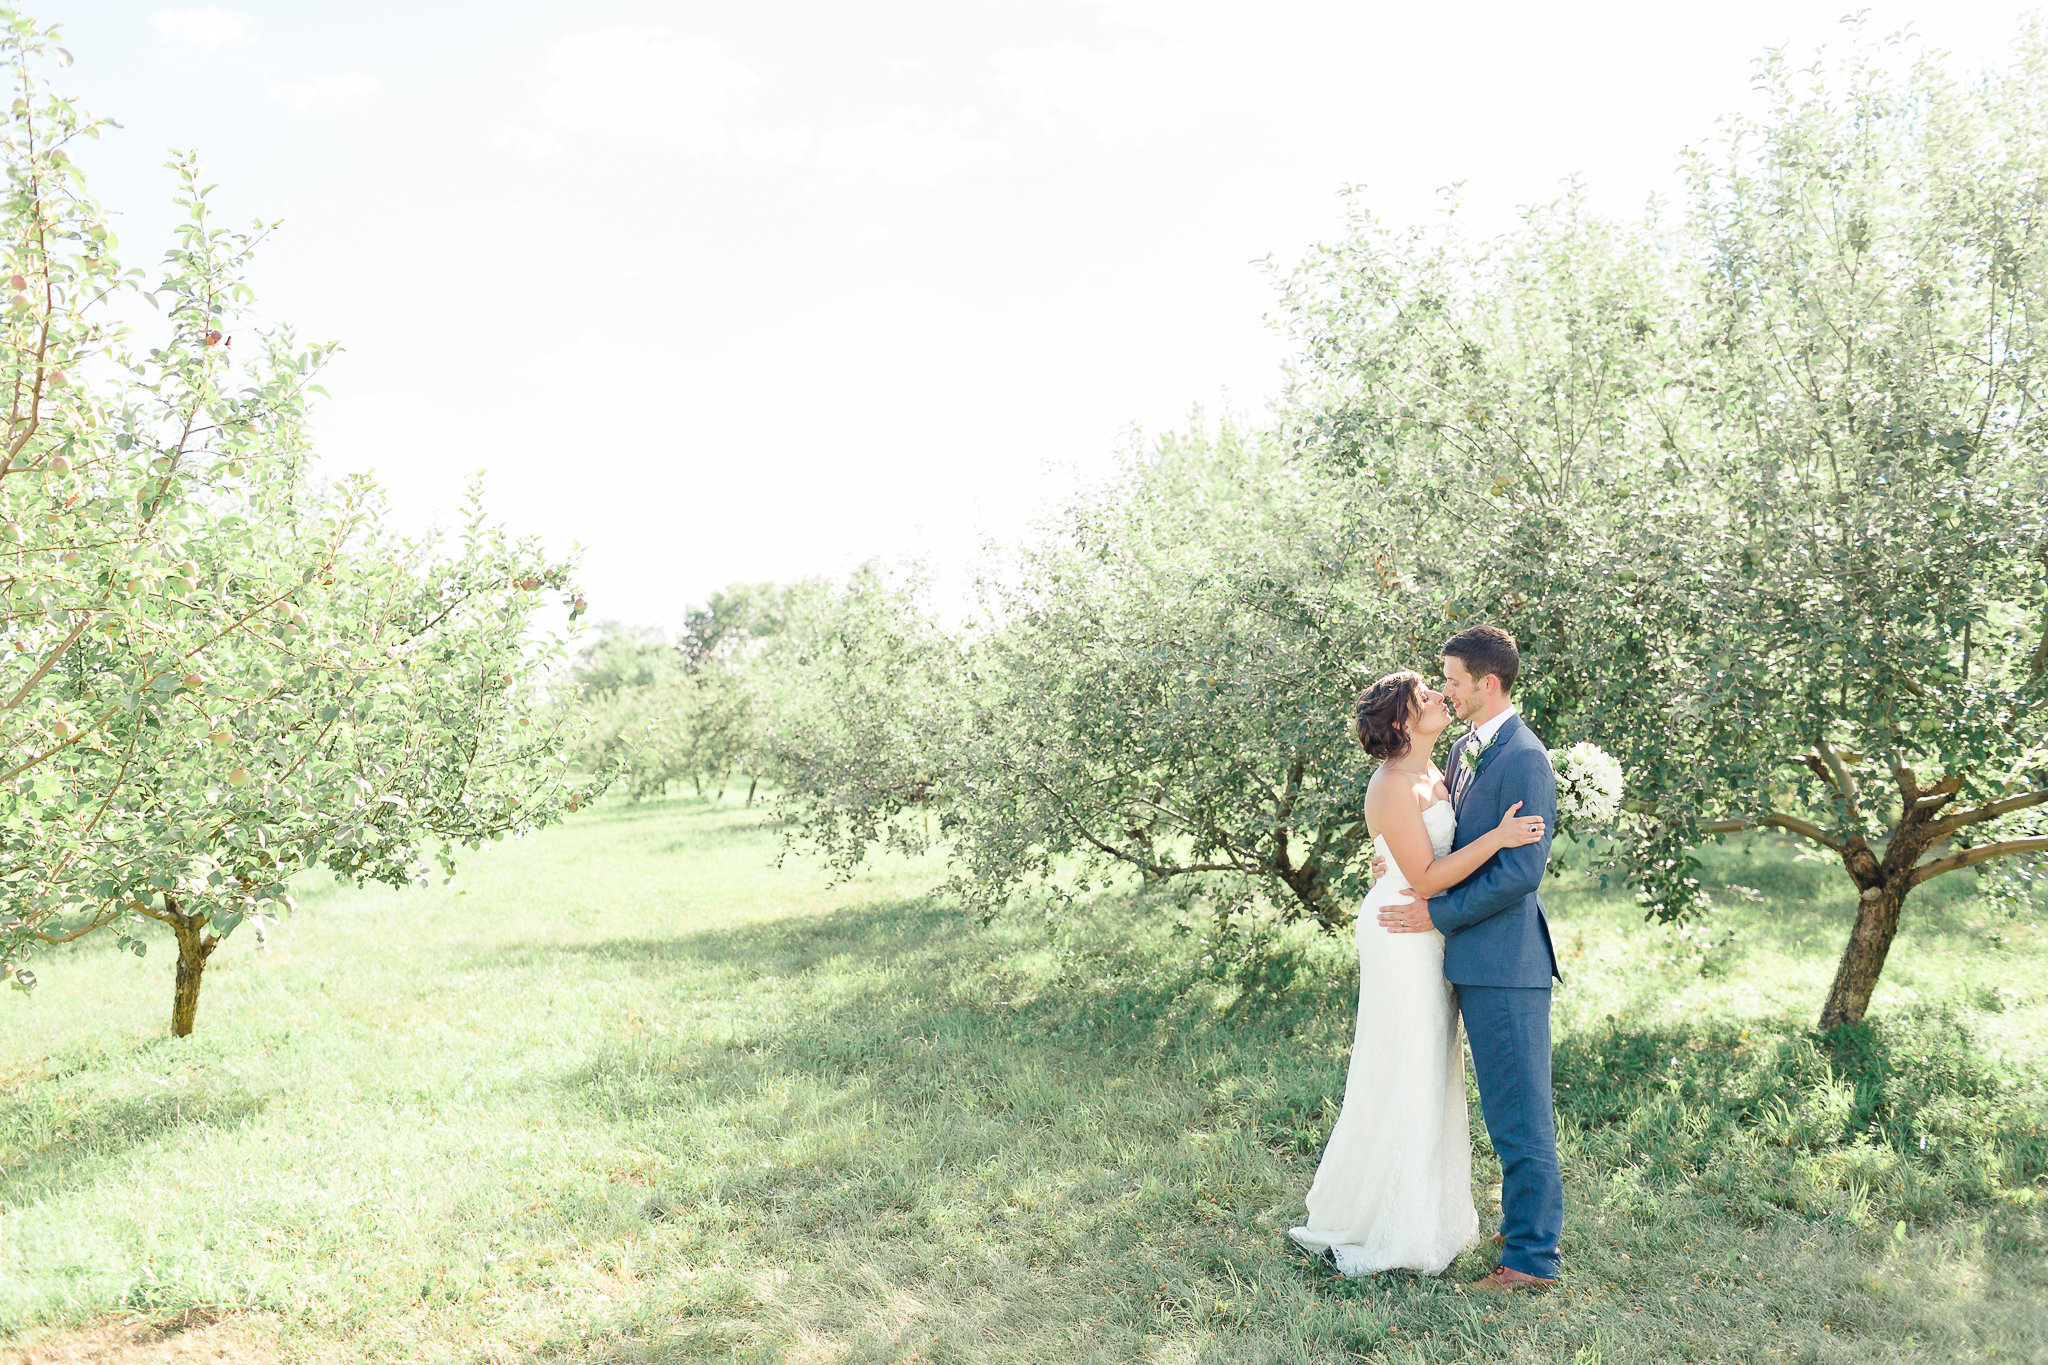 photographe-mariage-verger-de-hudson-lisa-renault-photographie-montreal-wedding-photographer-55